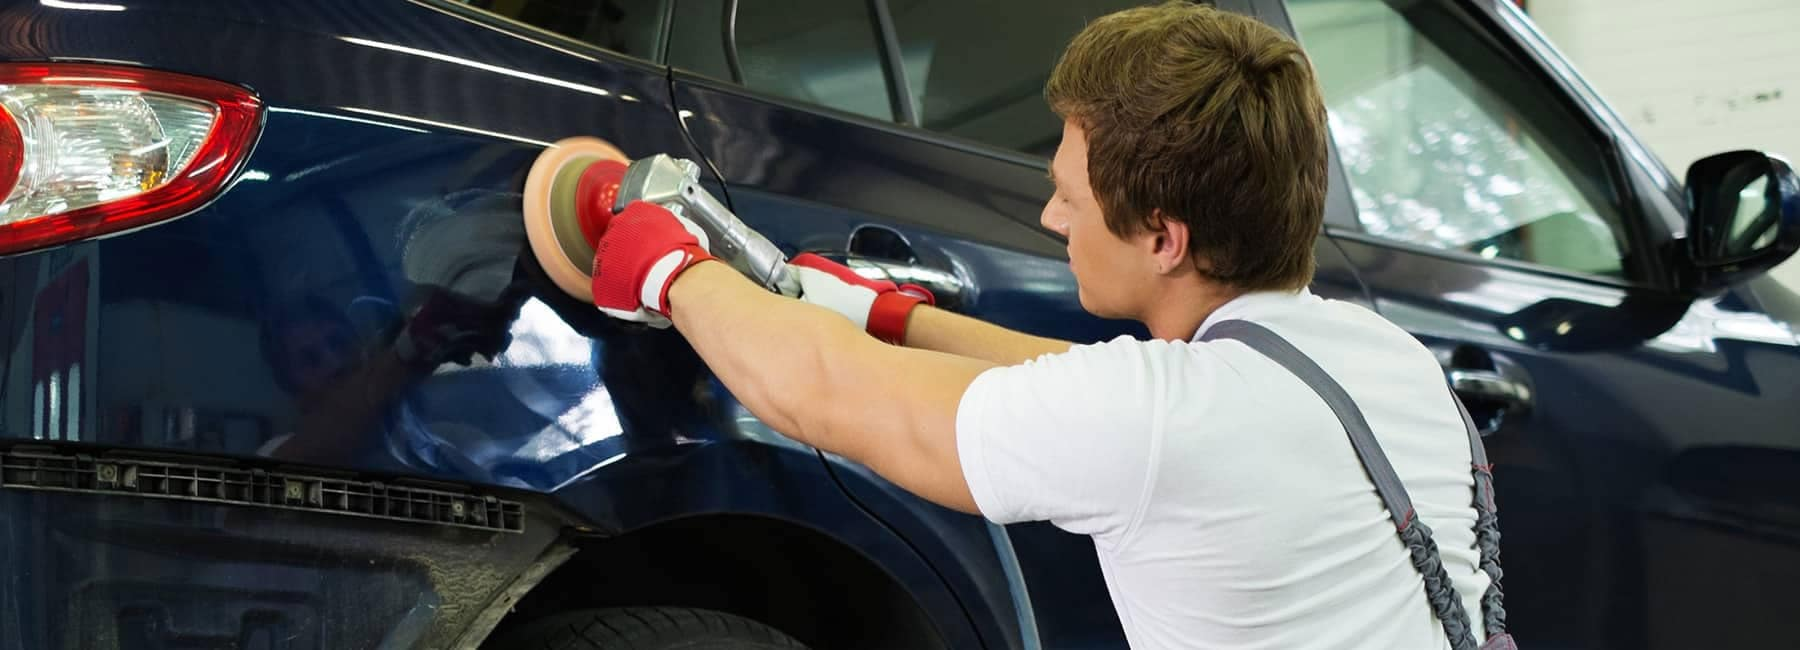 A mechanic doing body work to a car